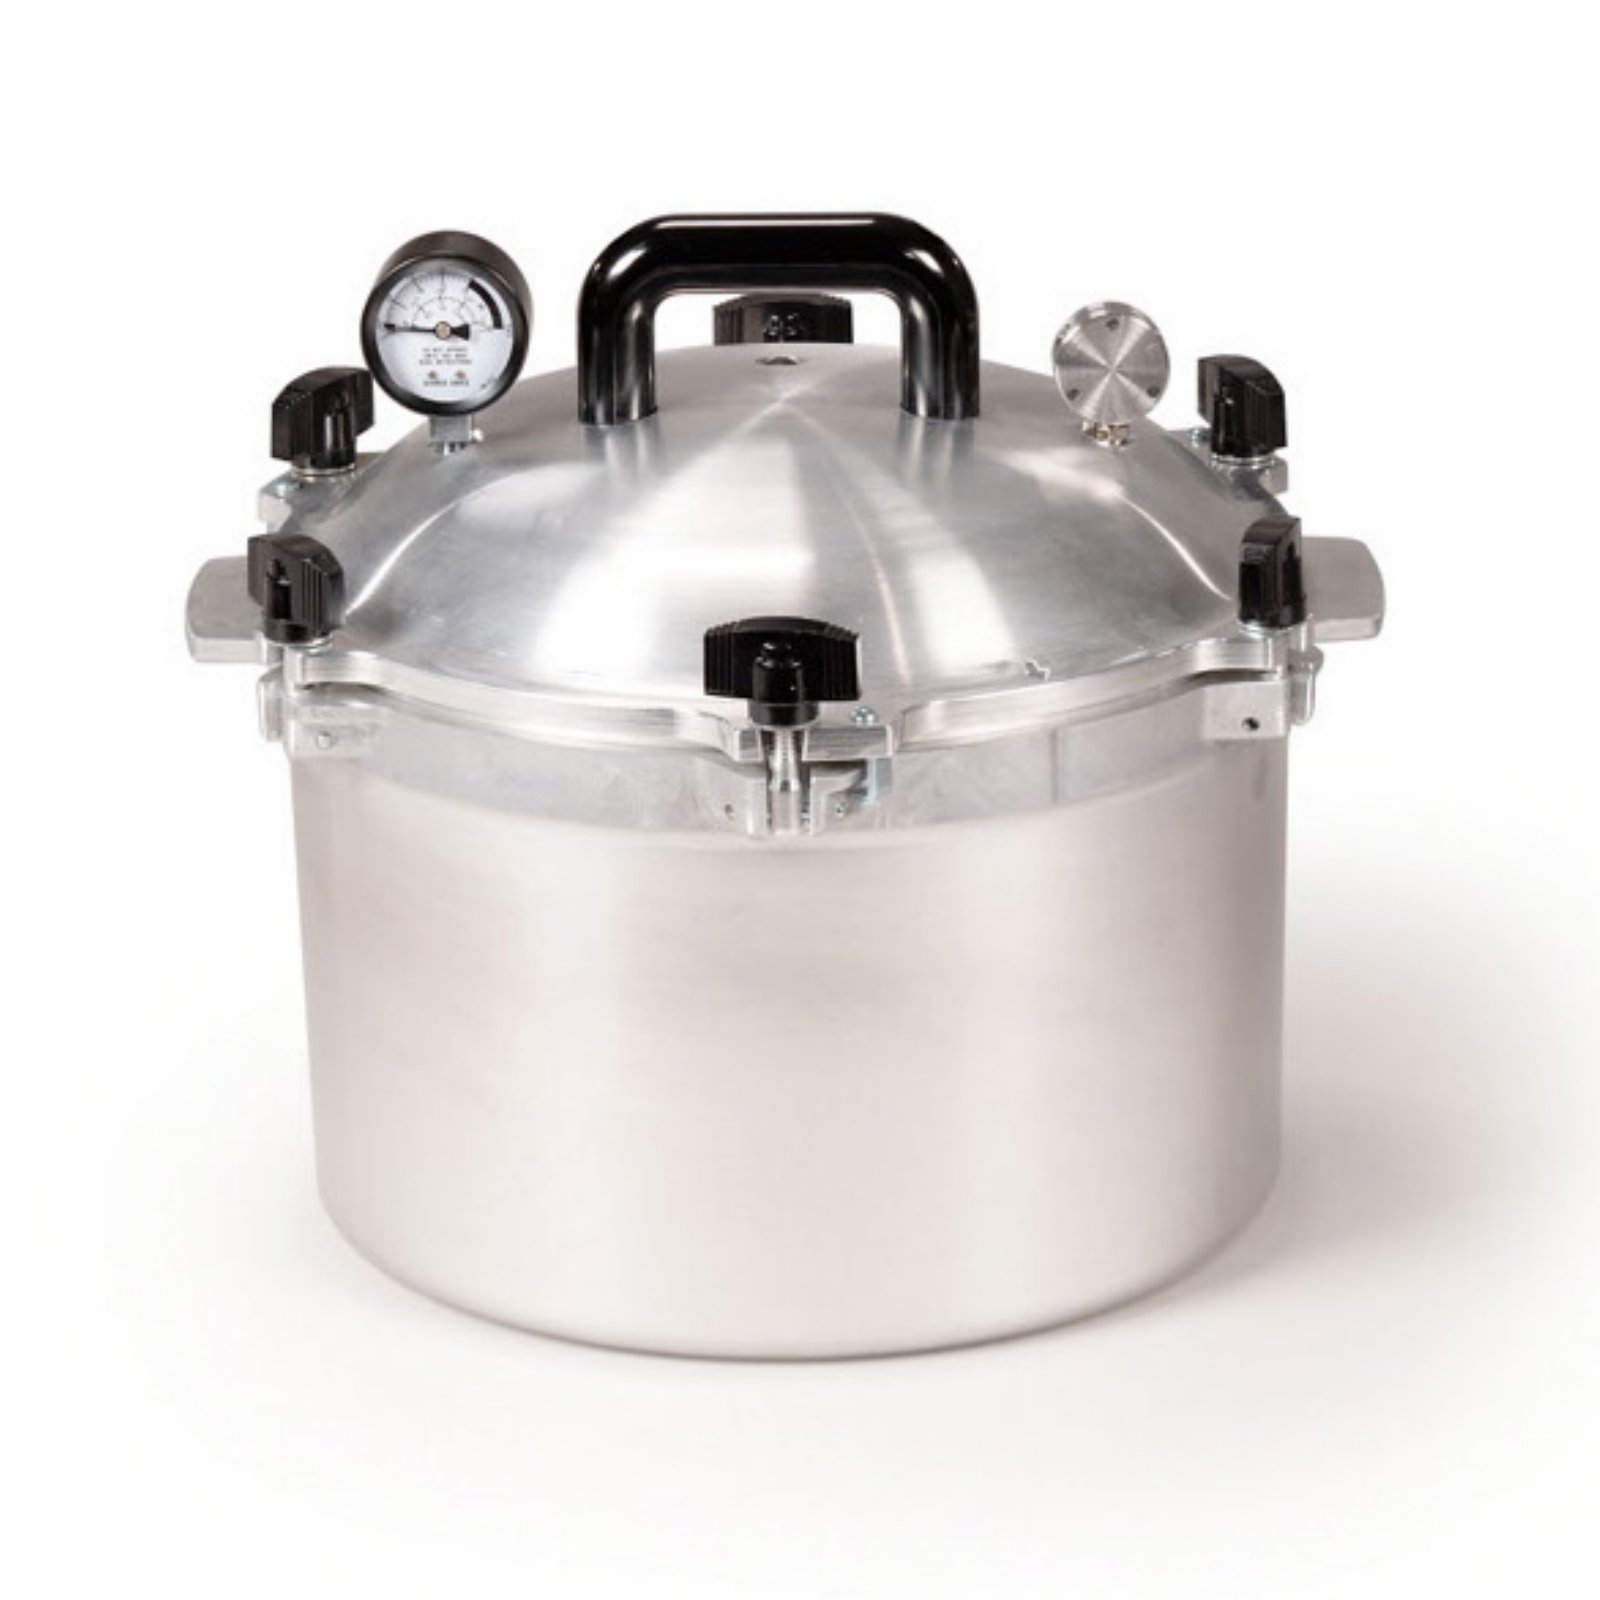 All American 915 15.5 Quart Pressure Cooker Canner